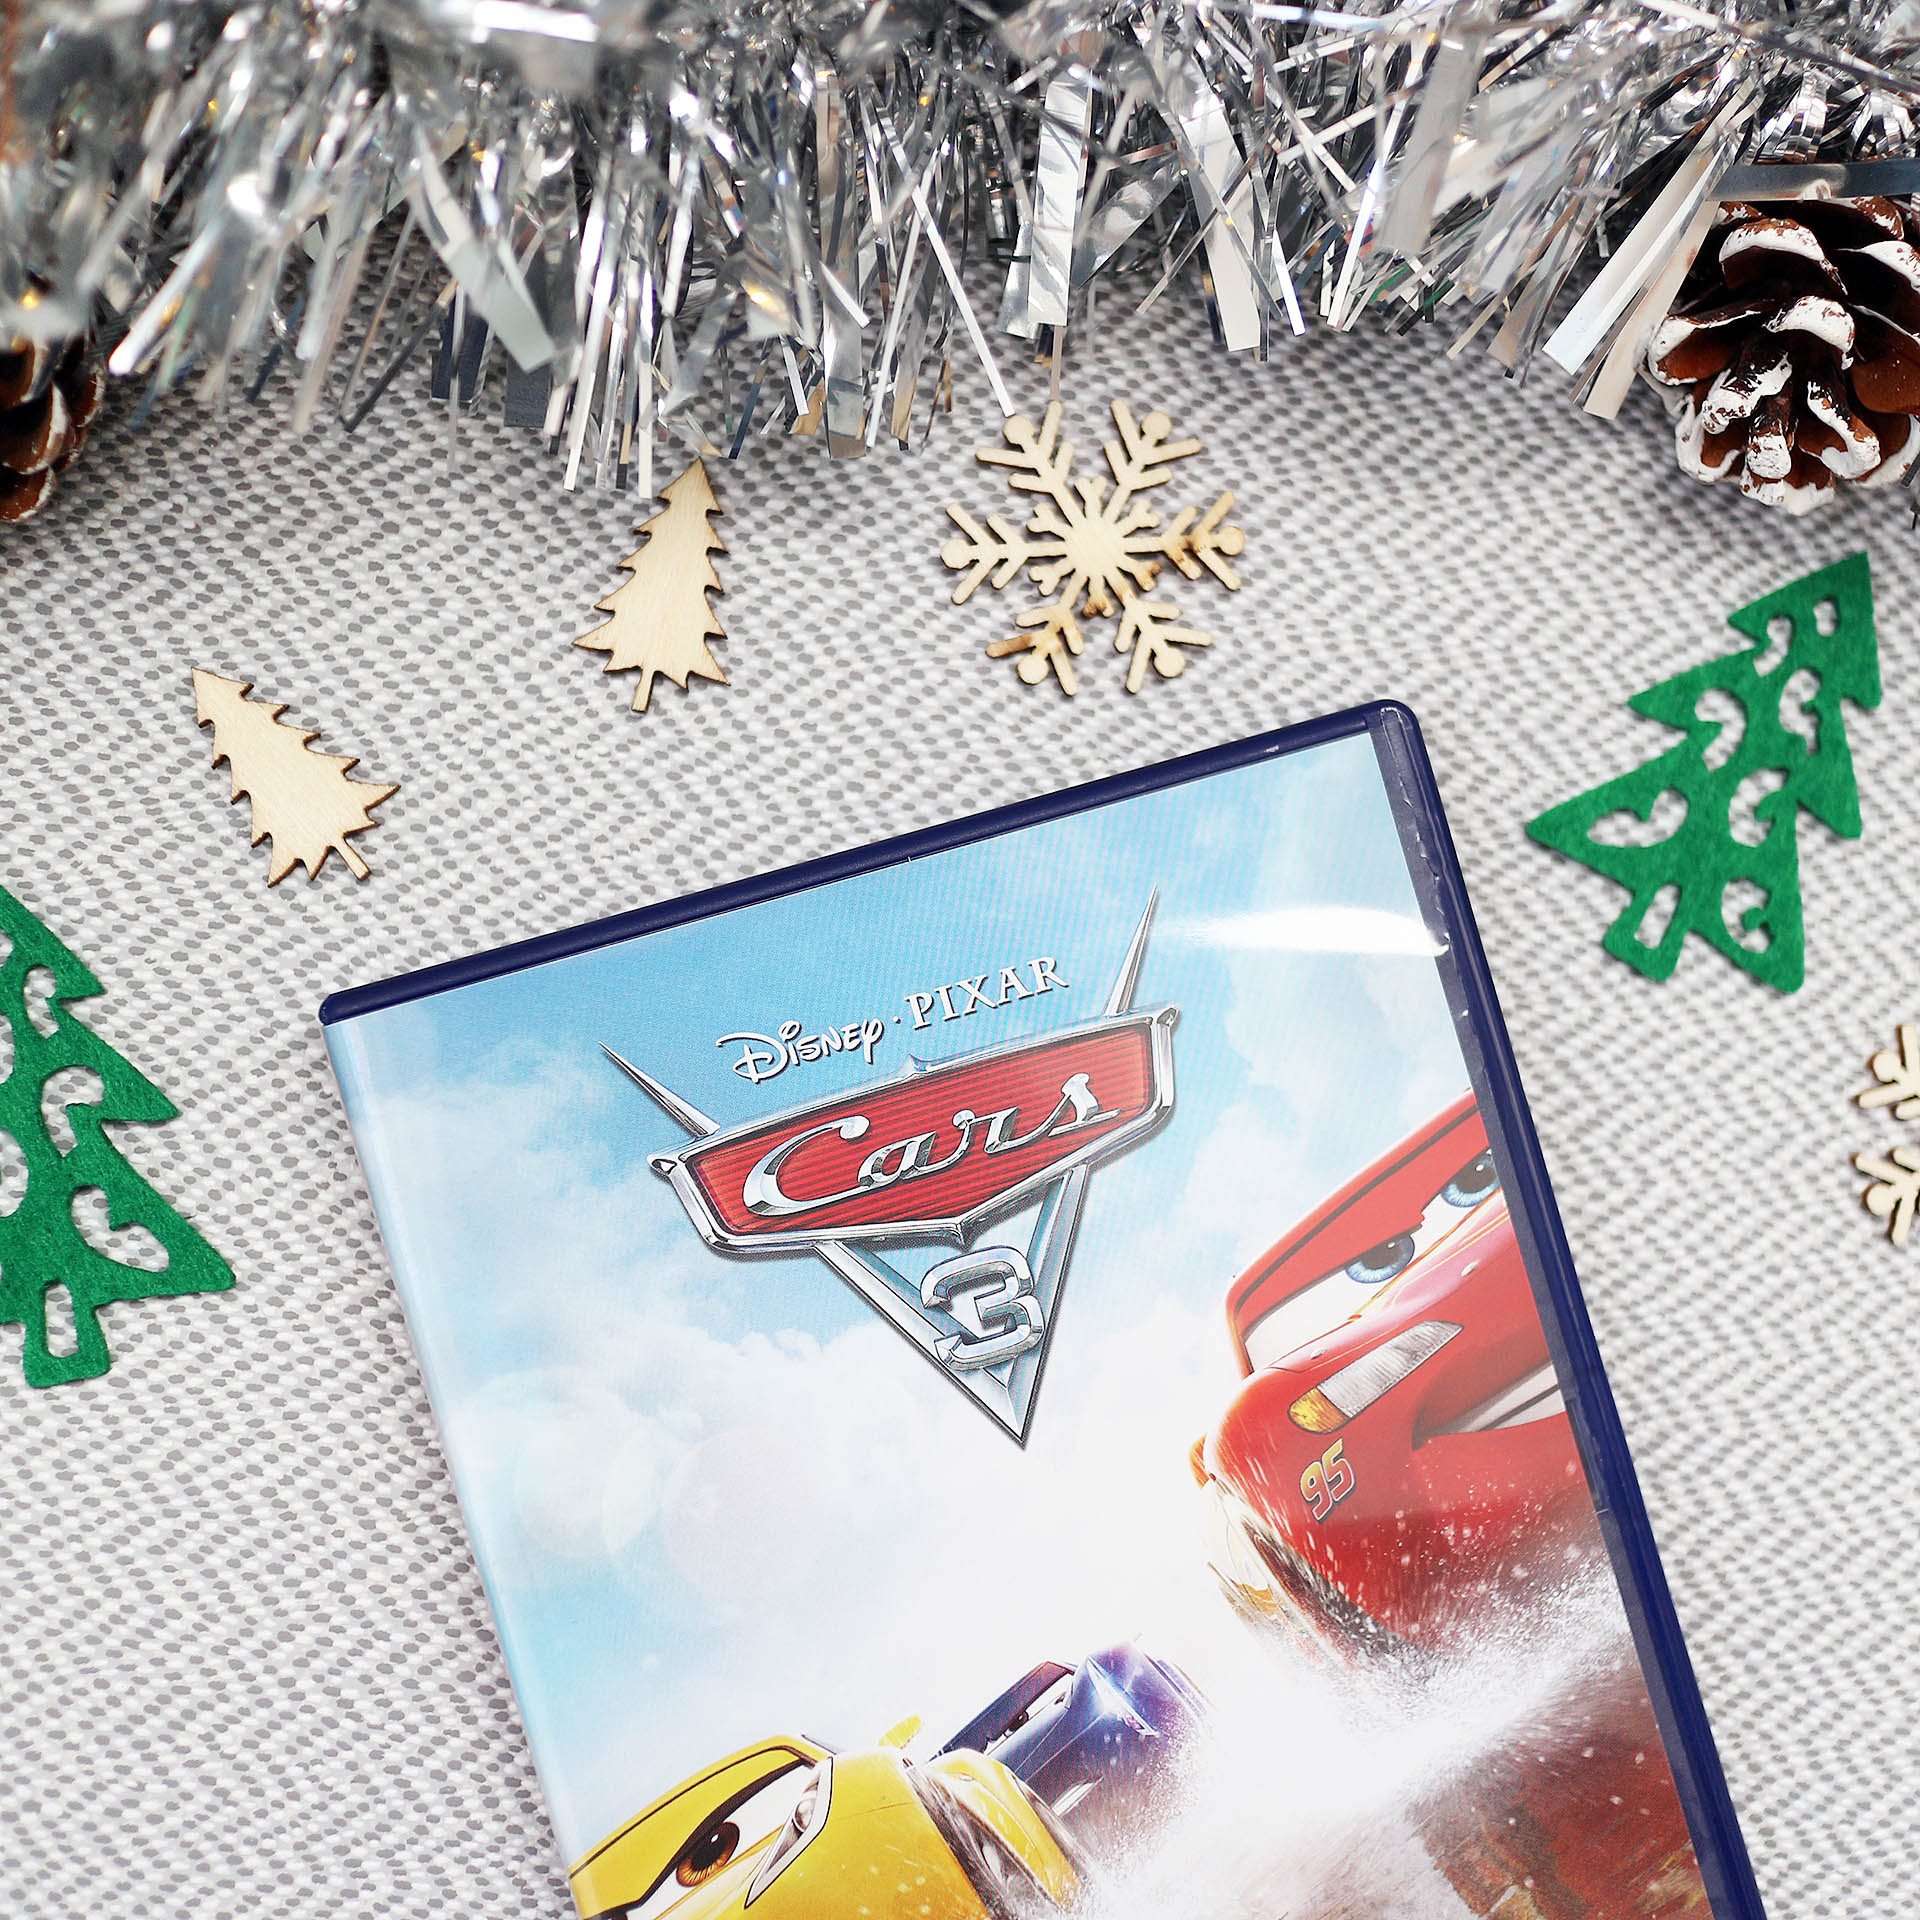 Cars 3 DVD - Christmas gift guide for car mad kids